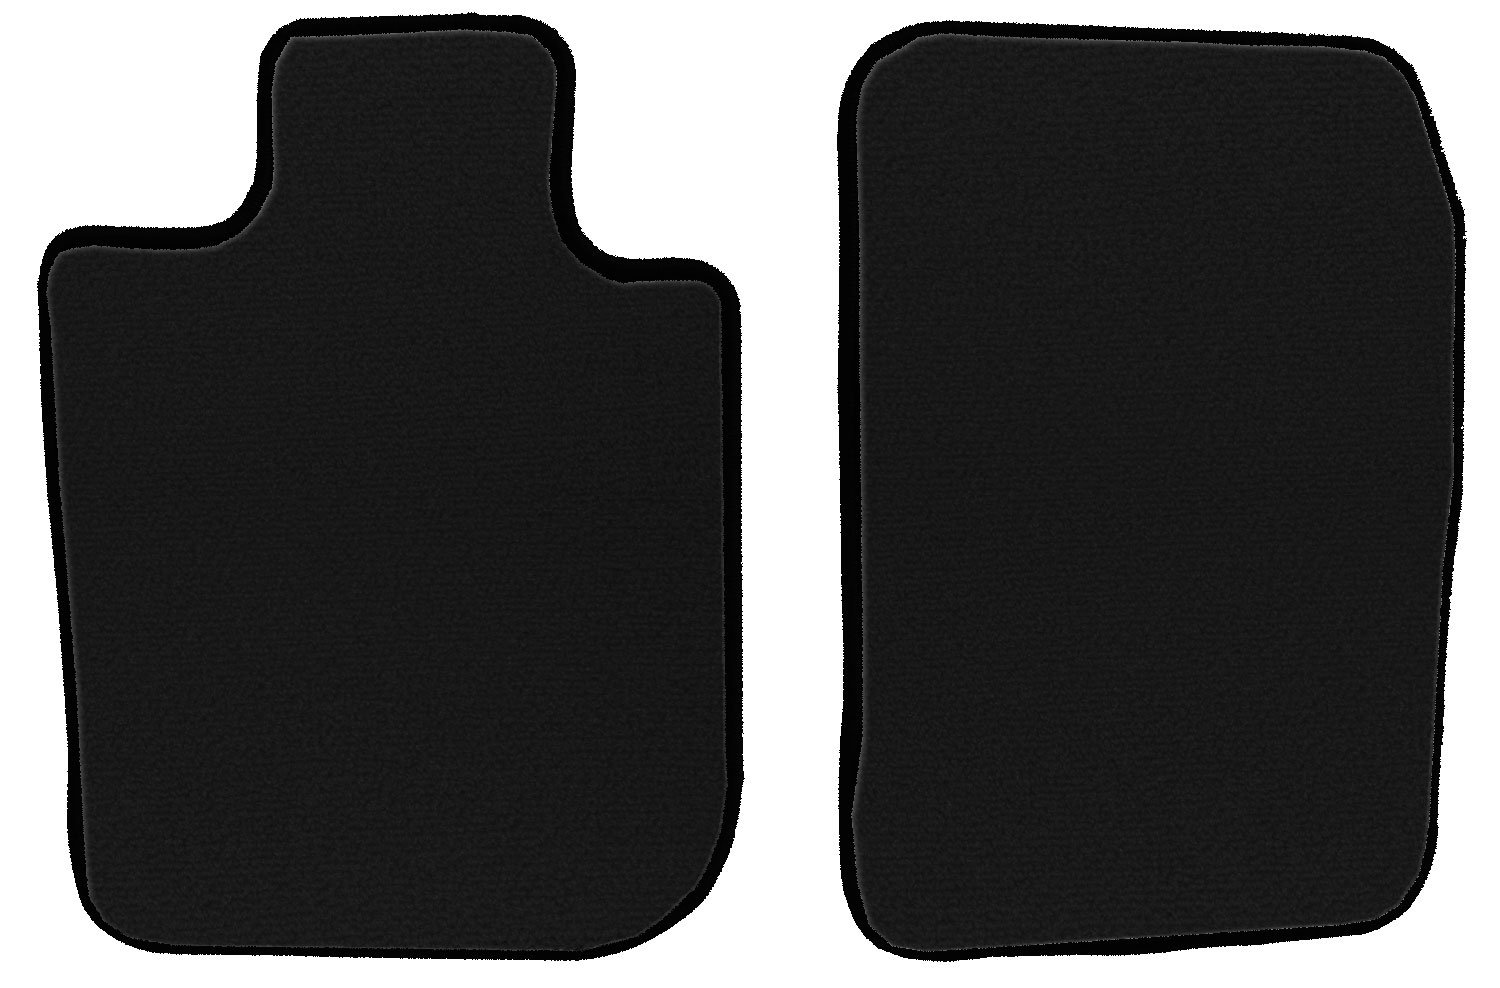 2009 2011 GGBAILEY D2783A-F1A-BK-LP Custom Fit Car Mats for 2007 2012 2013 Mercedes-Benz S63//S65 Sedan Black Loop Driver /& Passenger Floor 2008 2010